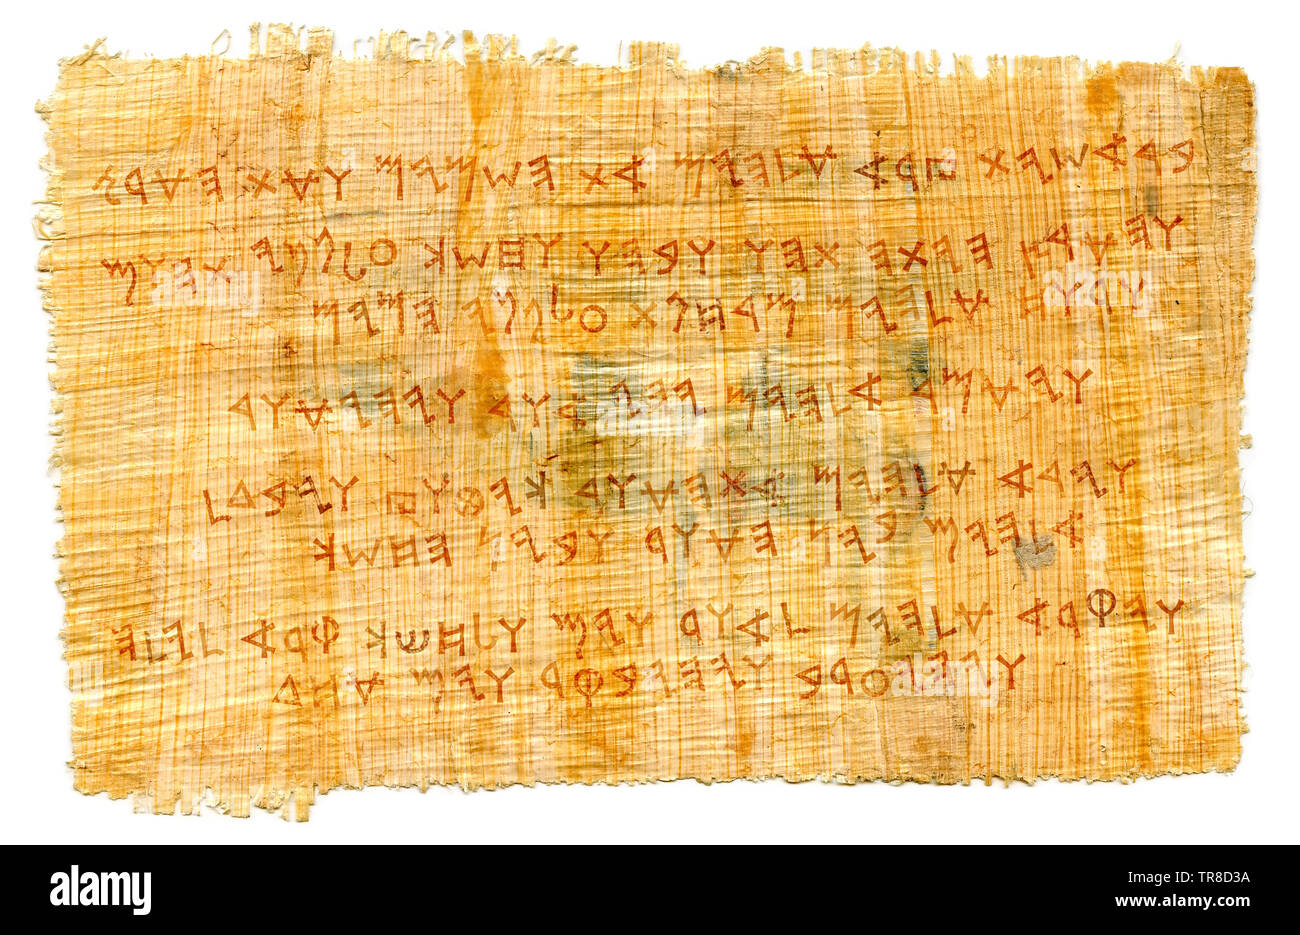 The Phœnician manuscript. The most first Alphabet in The World, Proto-writing. The Middle East, c.1500–1200 B.C. // Ancient papyrus. - Stock Image